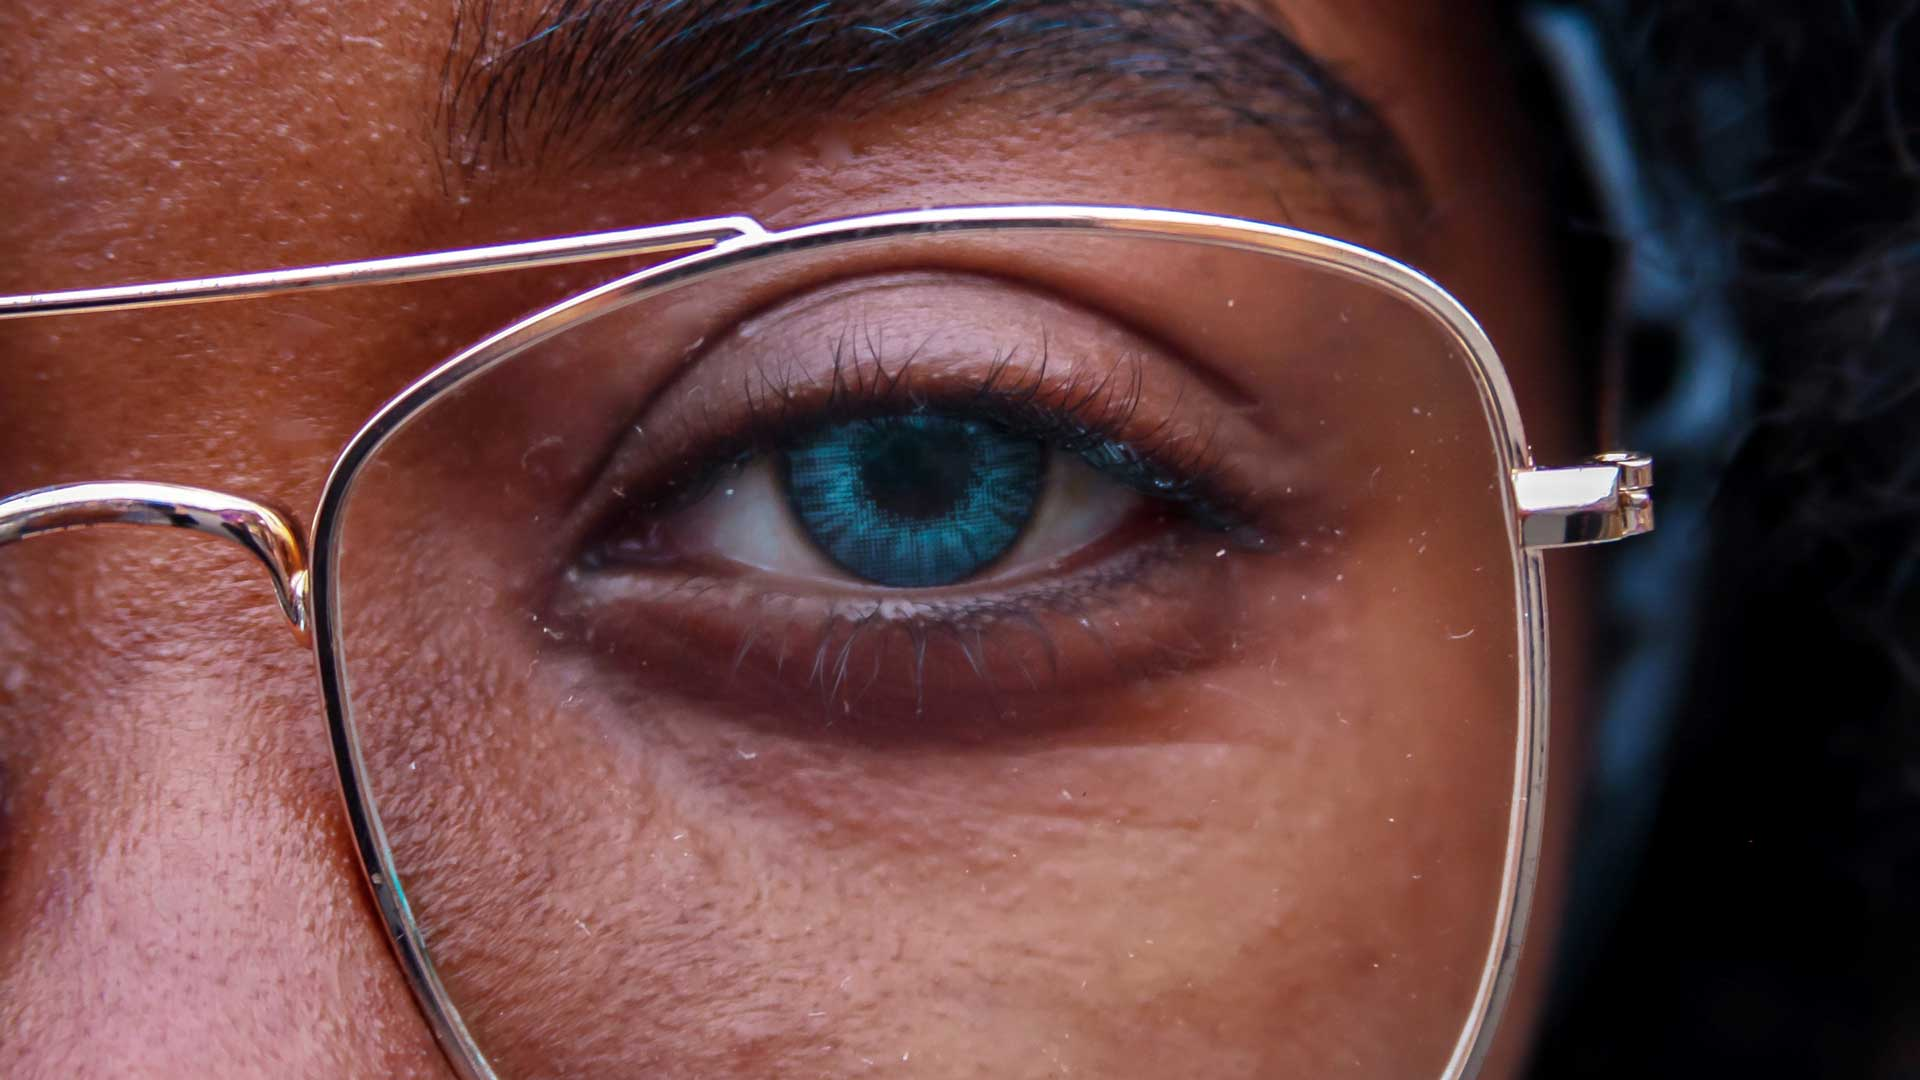 Close-up image of black man with blue eyes wearing clear metallic frame spectacles.